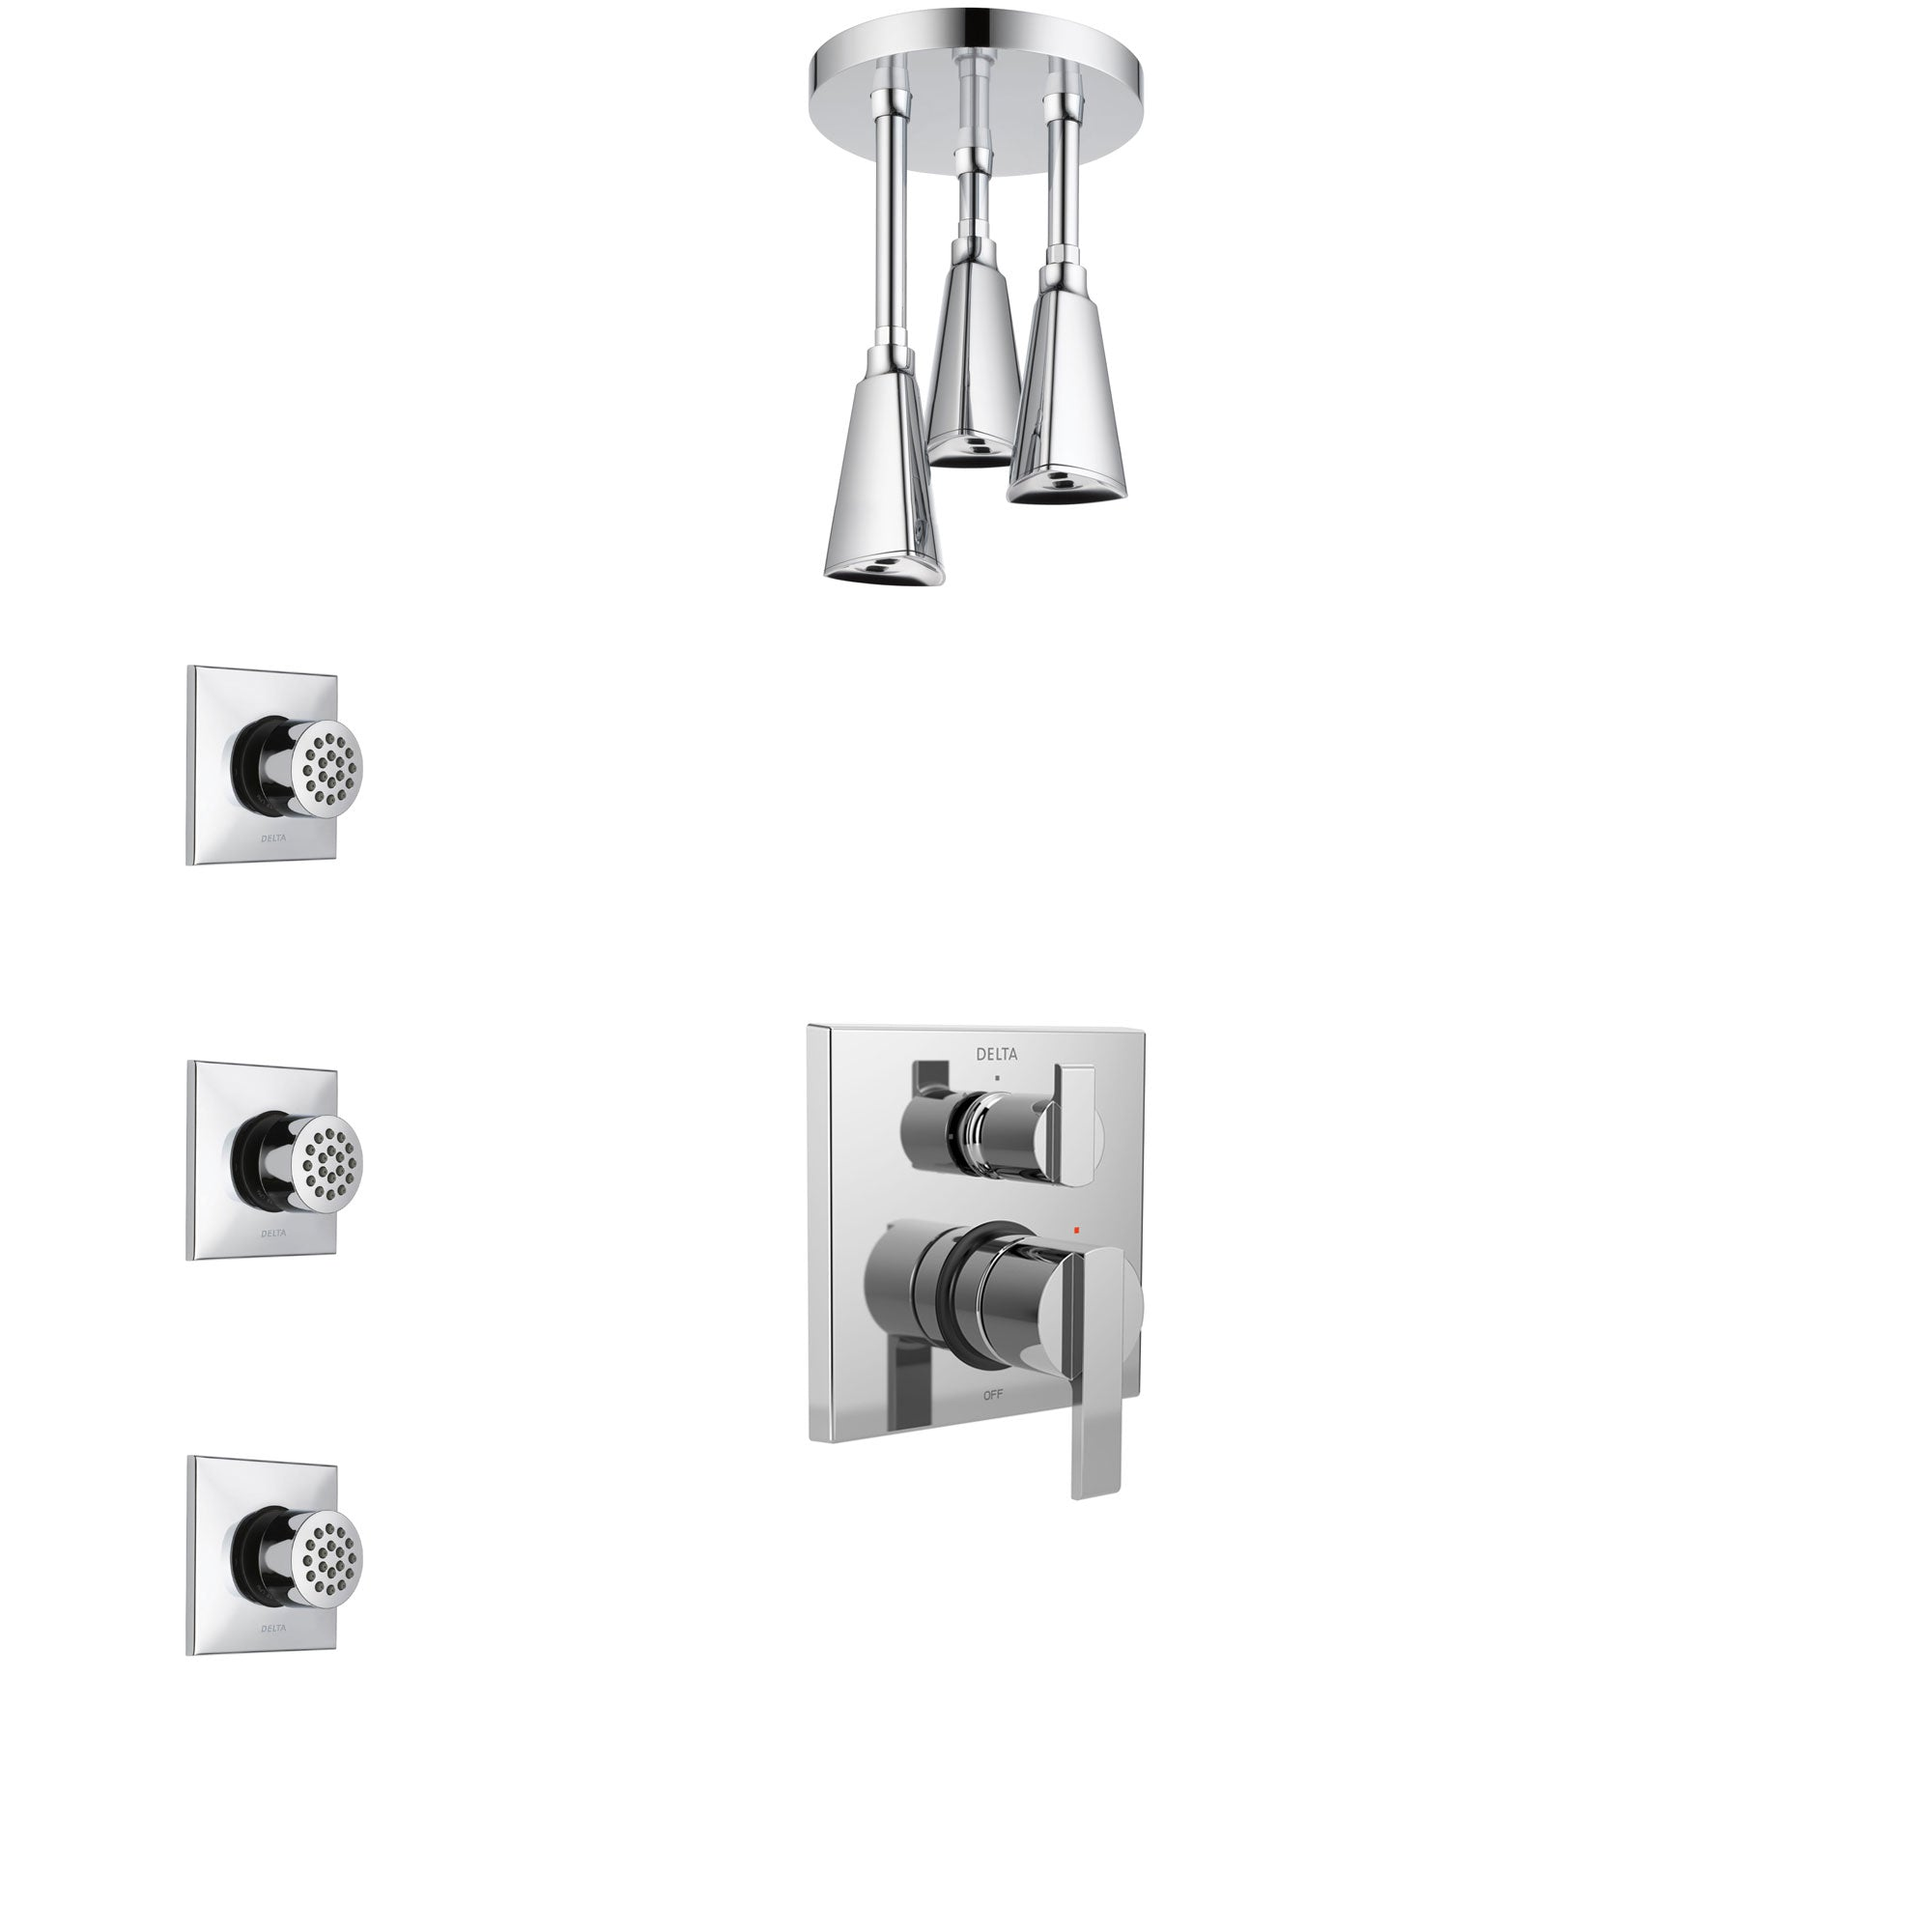 Delta Ara Chrome Finish Shower System with Control Handle, Integrated 3-Setting Diverter, Ceiling Mount Showerhead, and 3 Body Sprays SS248674